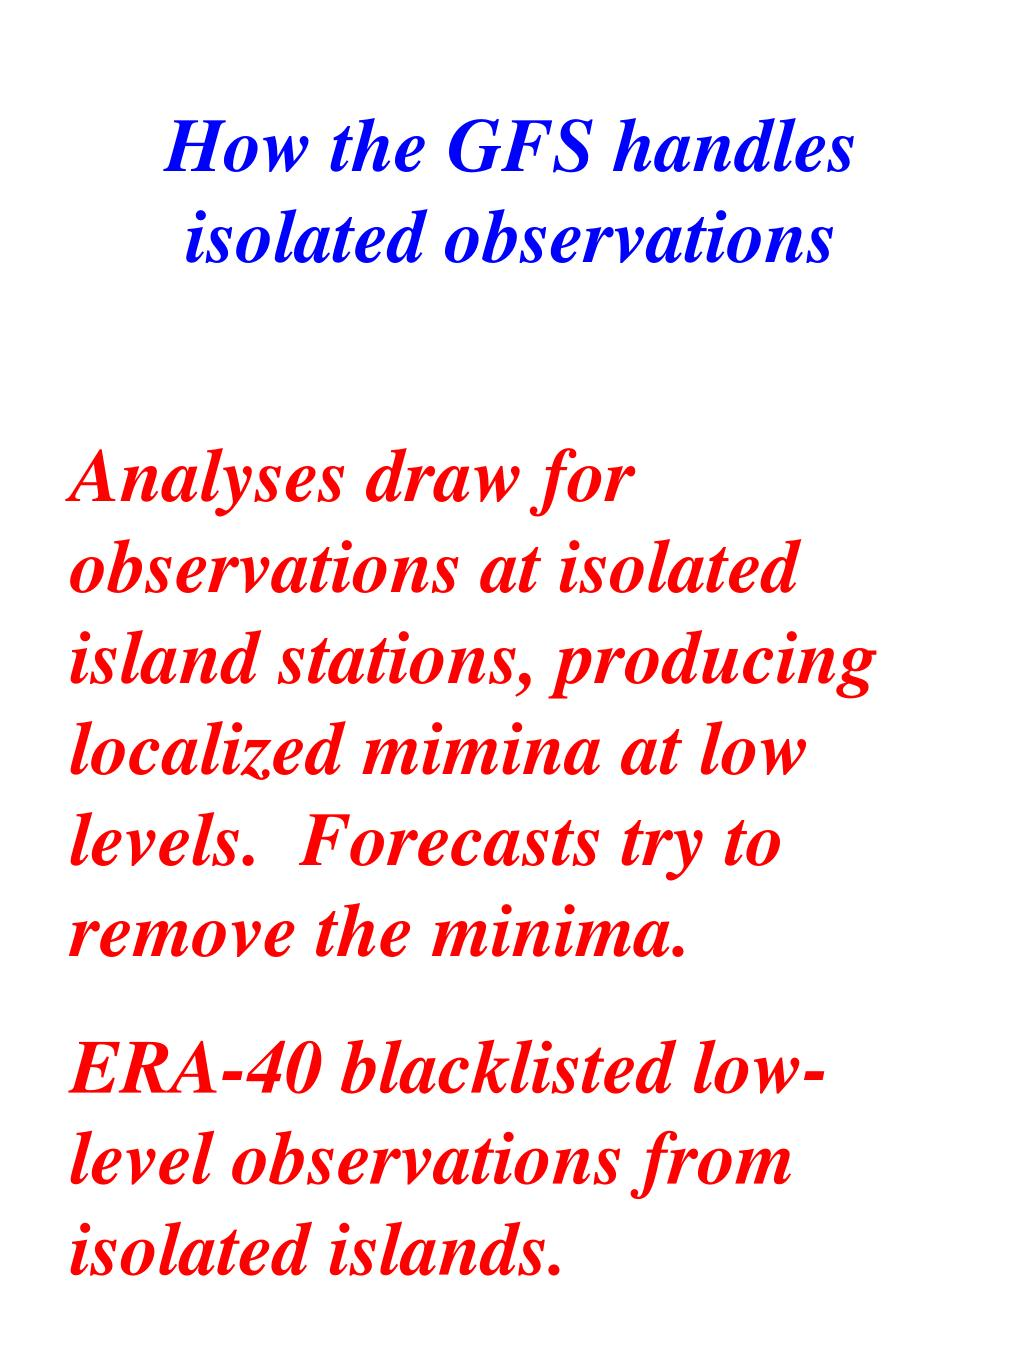 How the GFS handles isolated observations